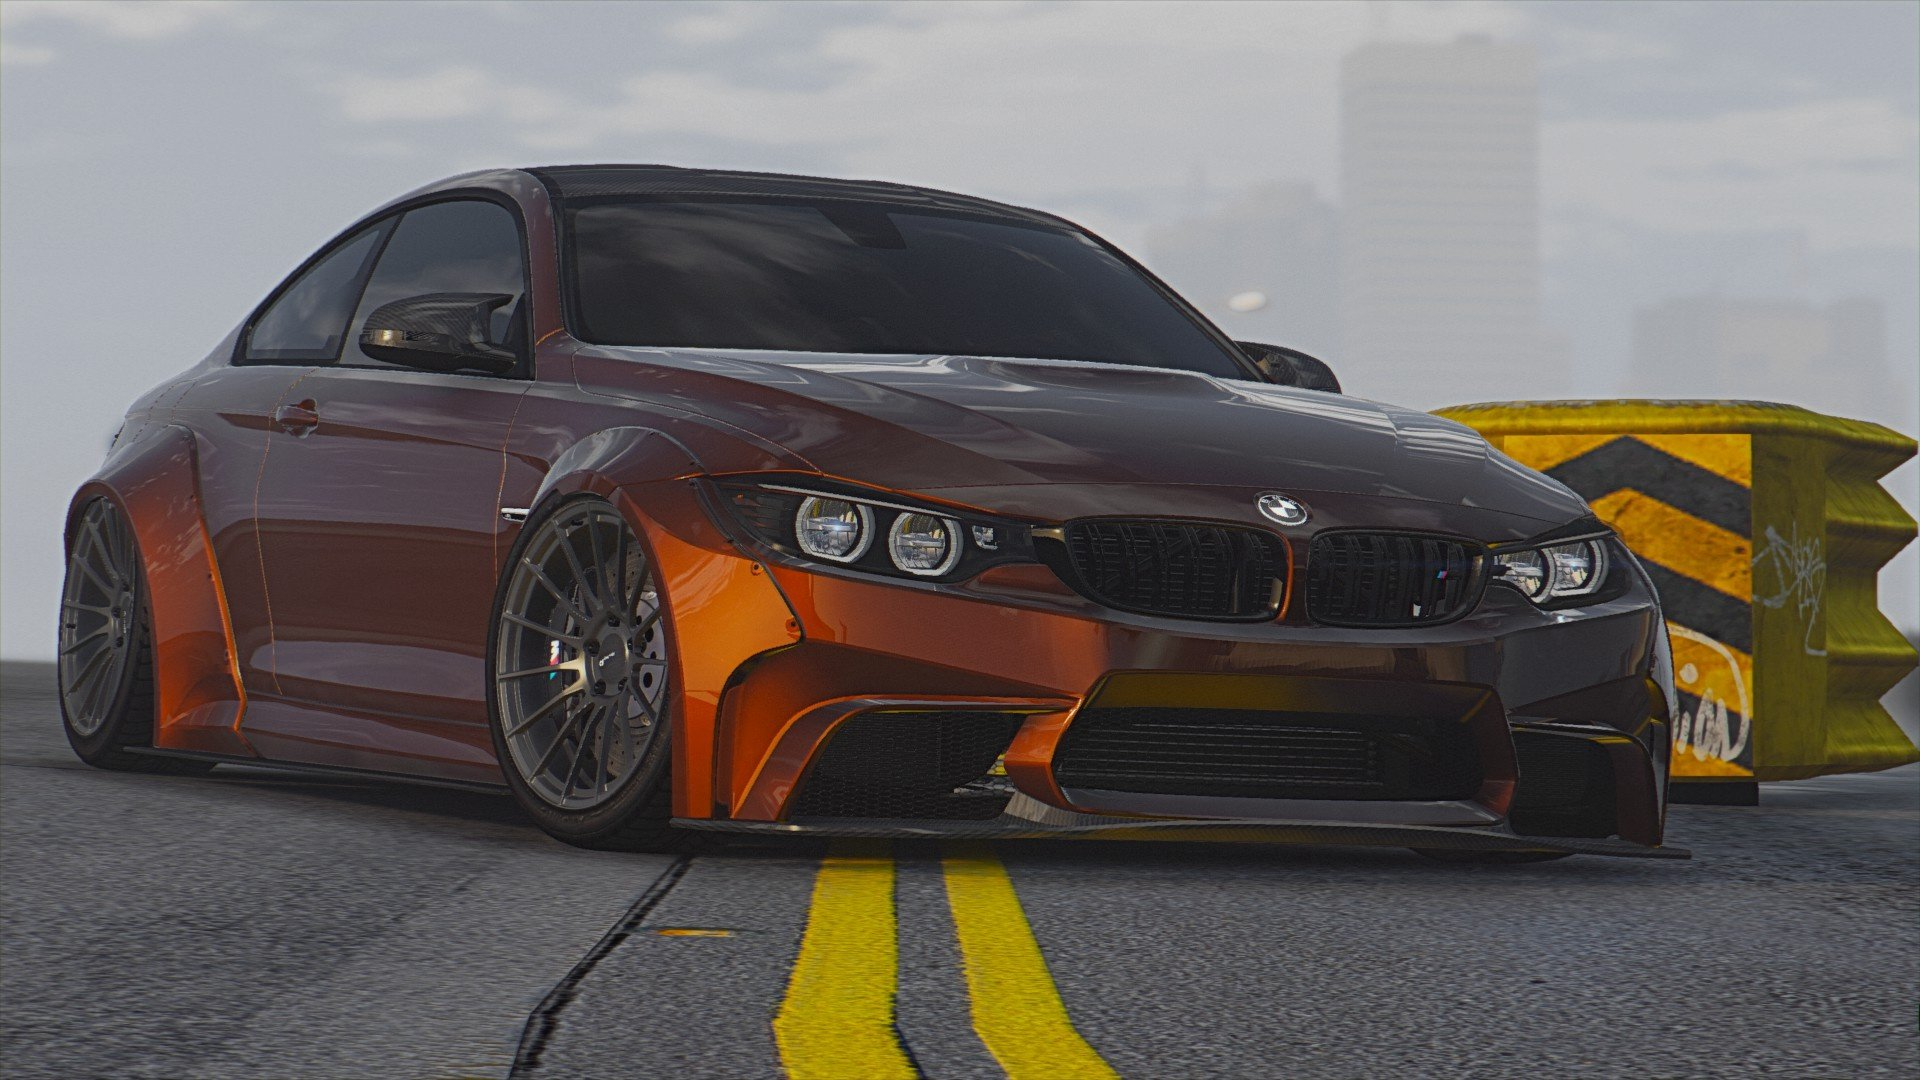 2015 Bmw F82 M4 Add On Tuning Bodykits Gta5 Mods Com